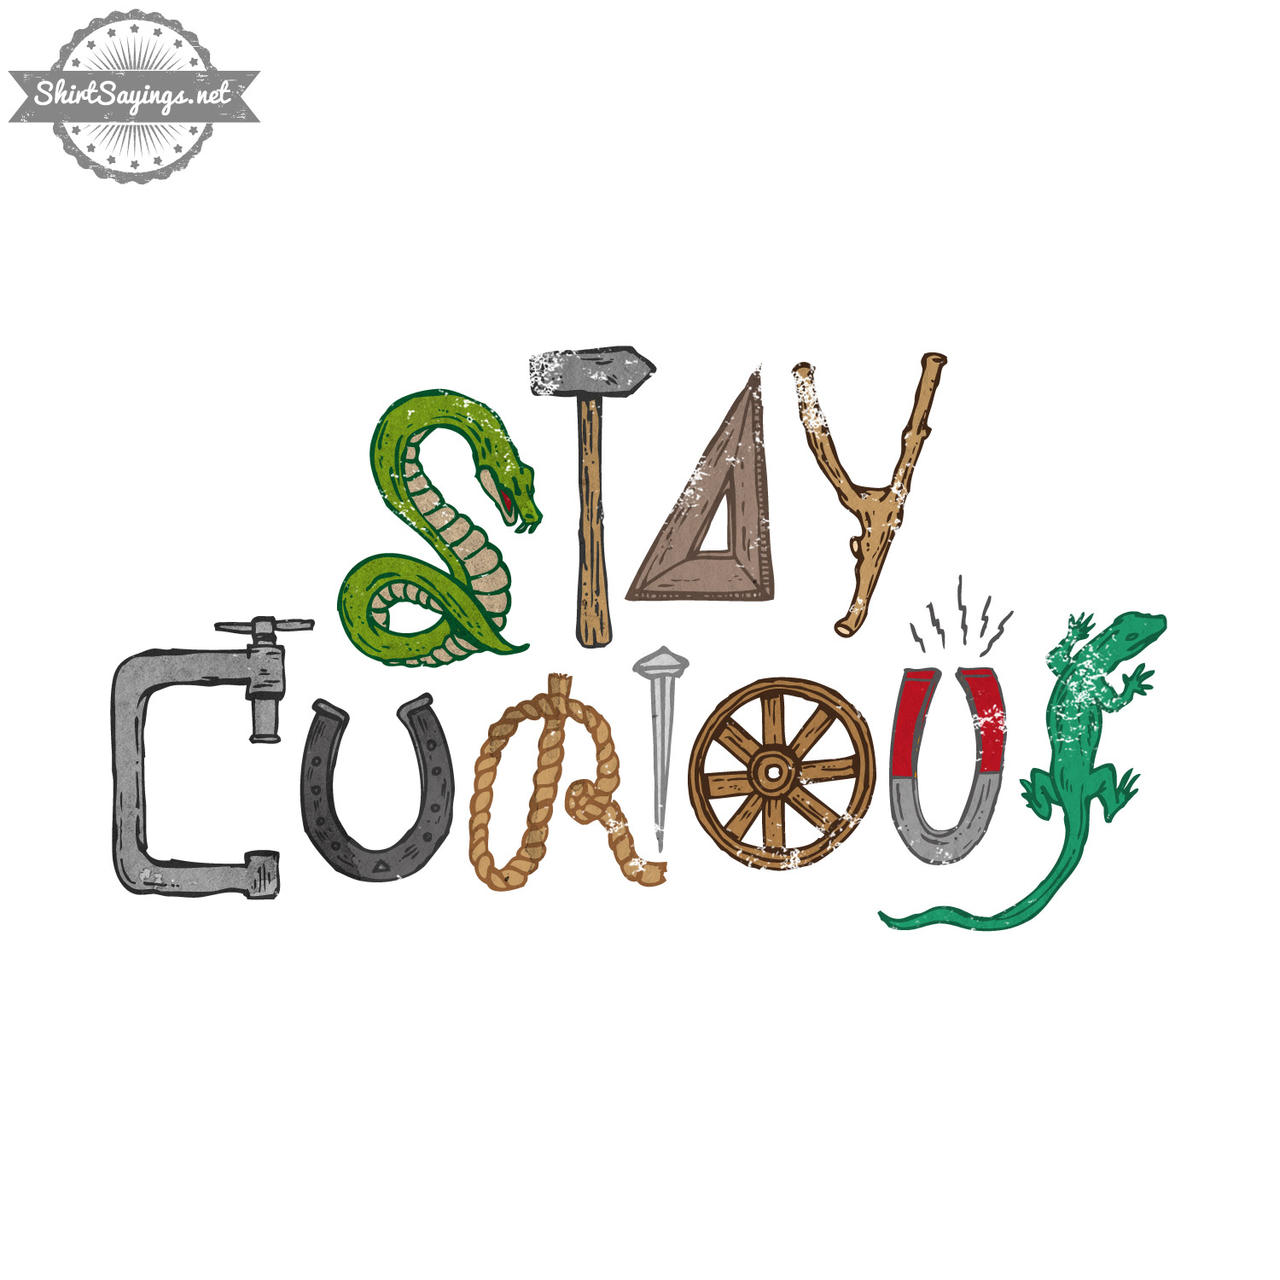 Stay Curious Close Up By ShirtSayings